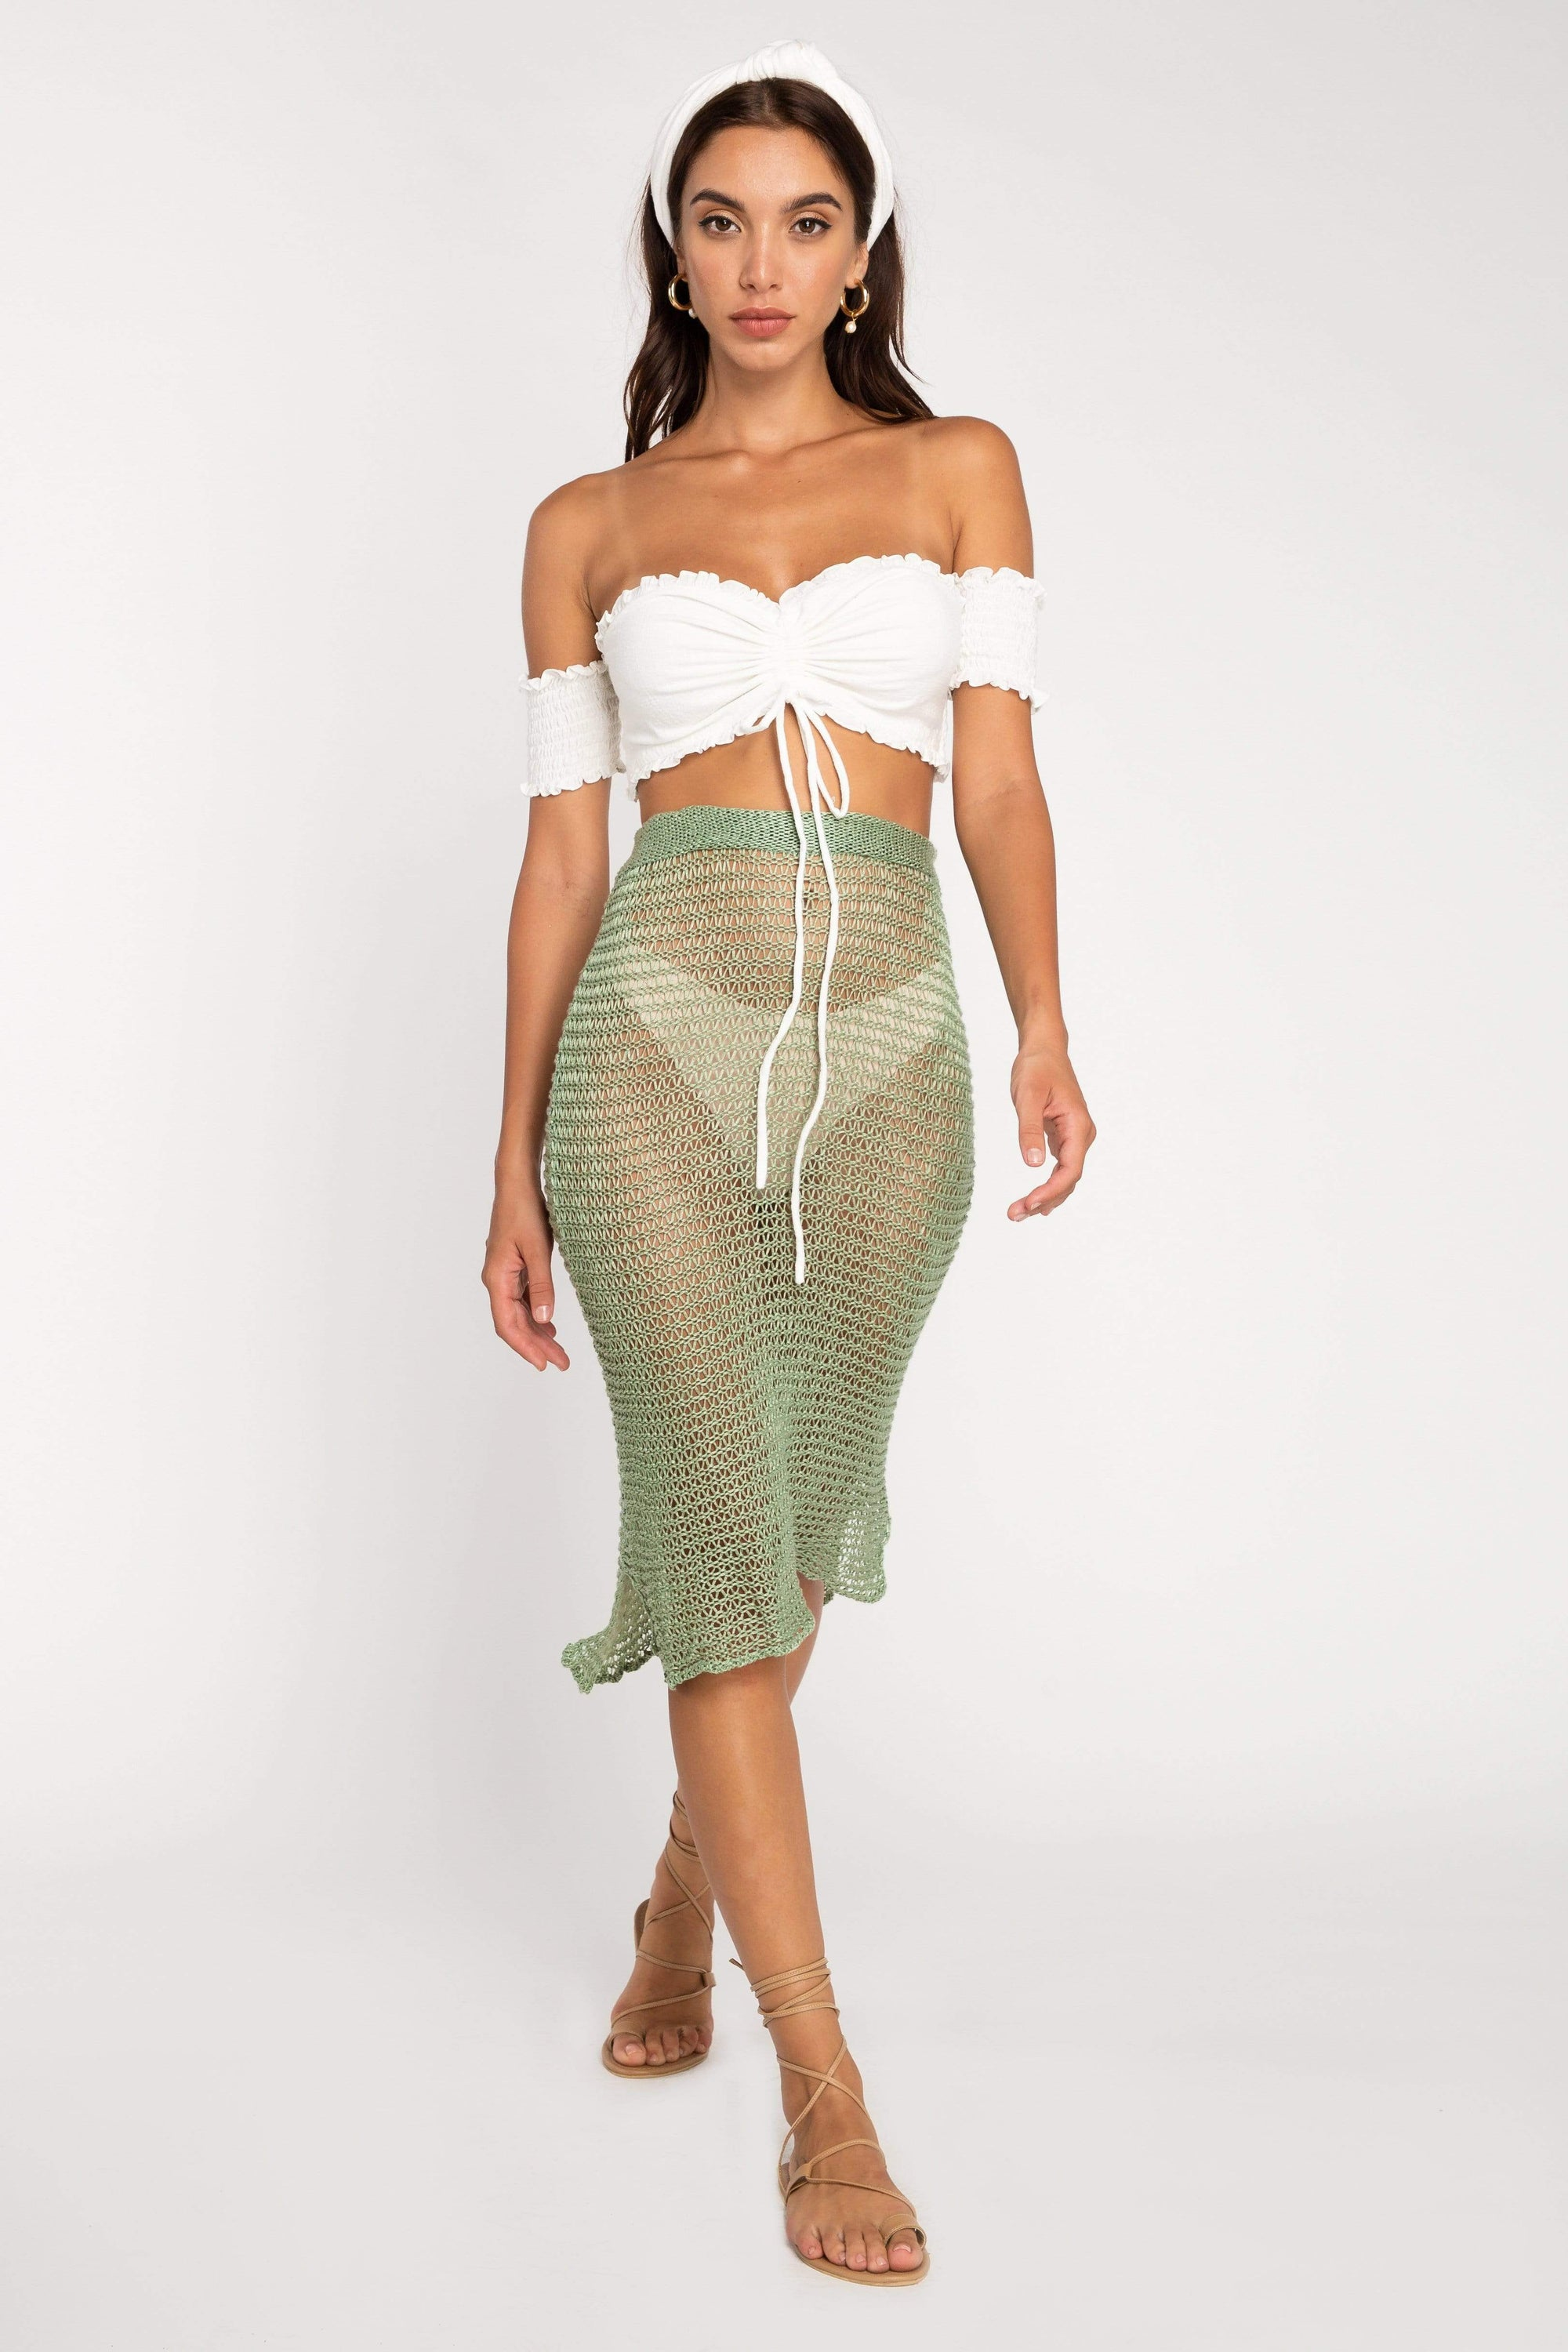 Tania Knit Skirt - Skirt - LOST IN PARADISE